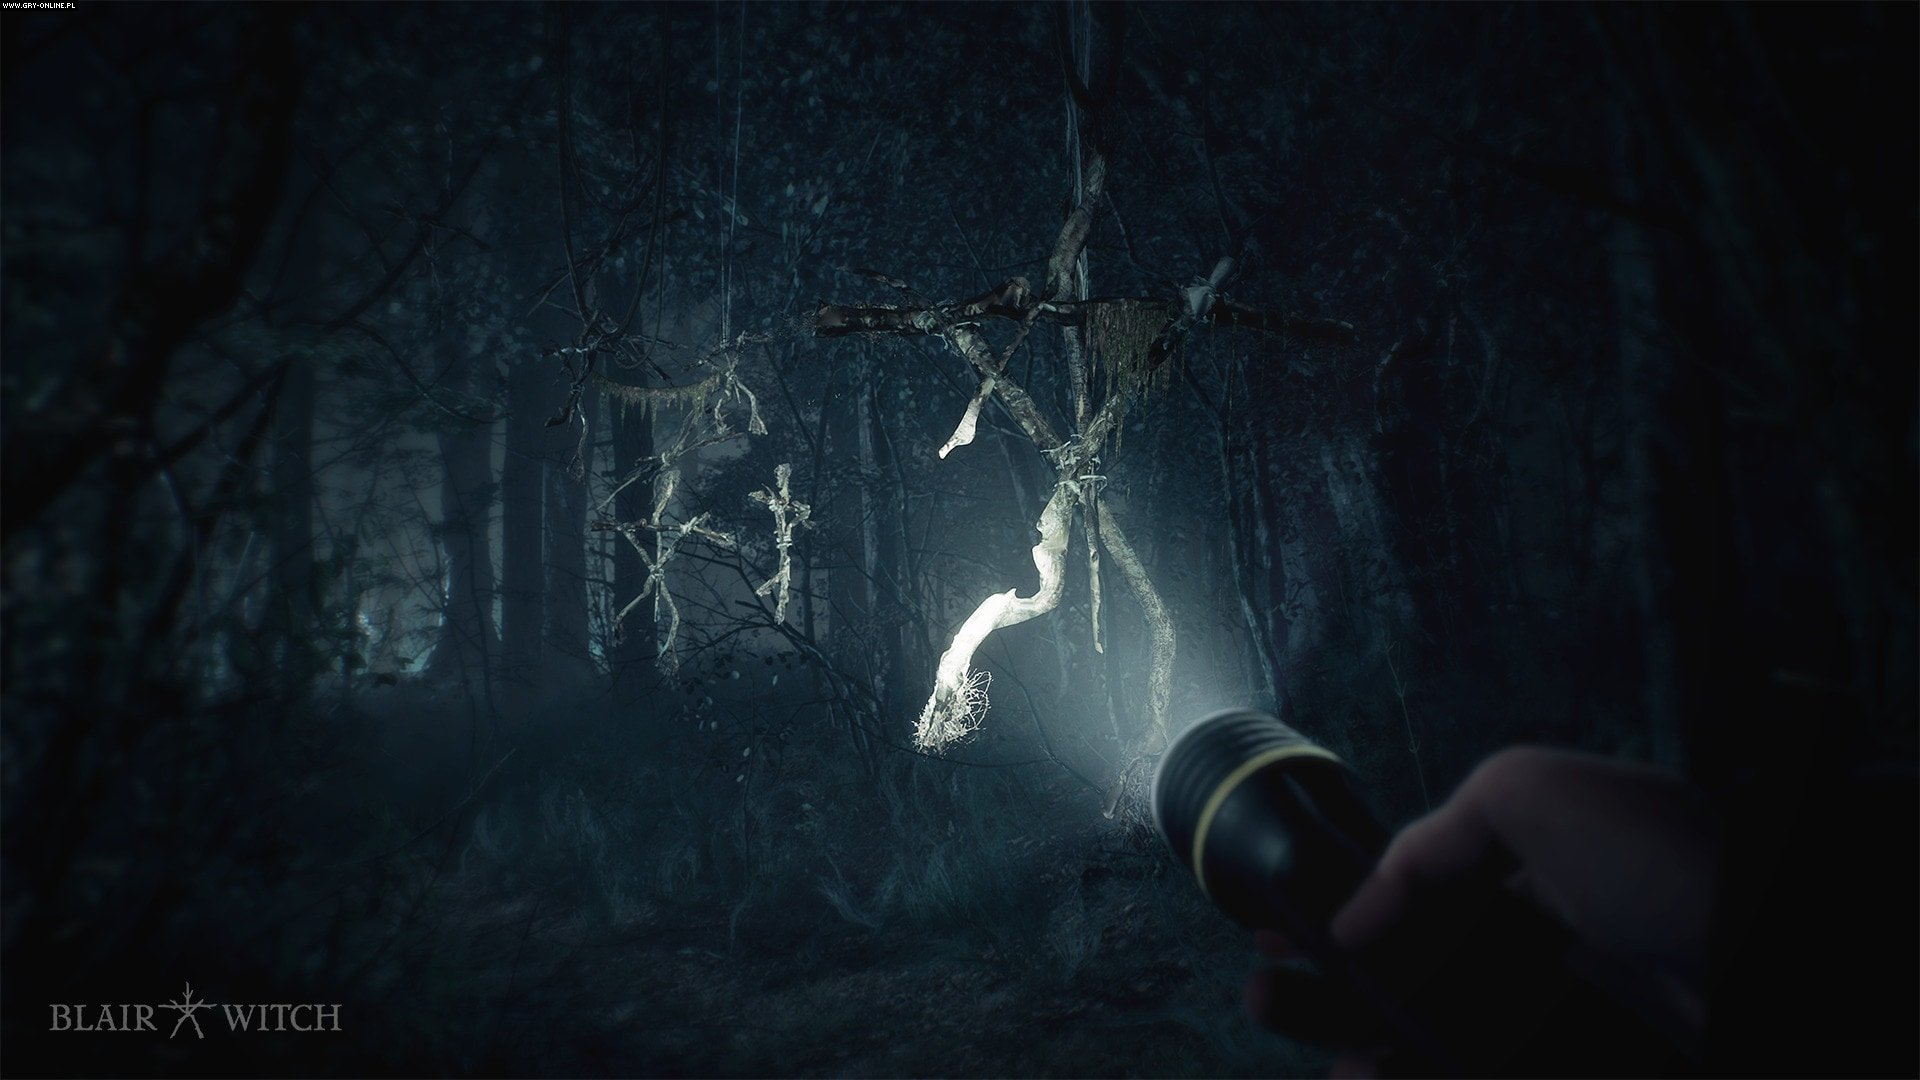 Blair Witch PC, XONE Games Image 1/5, Bloober Team